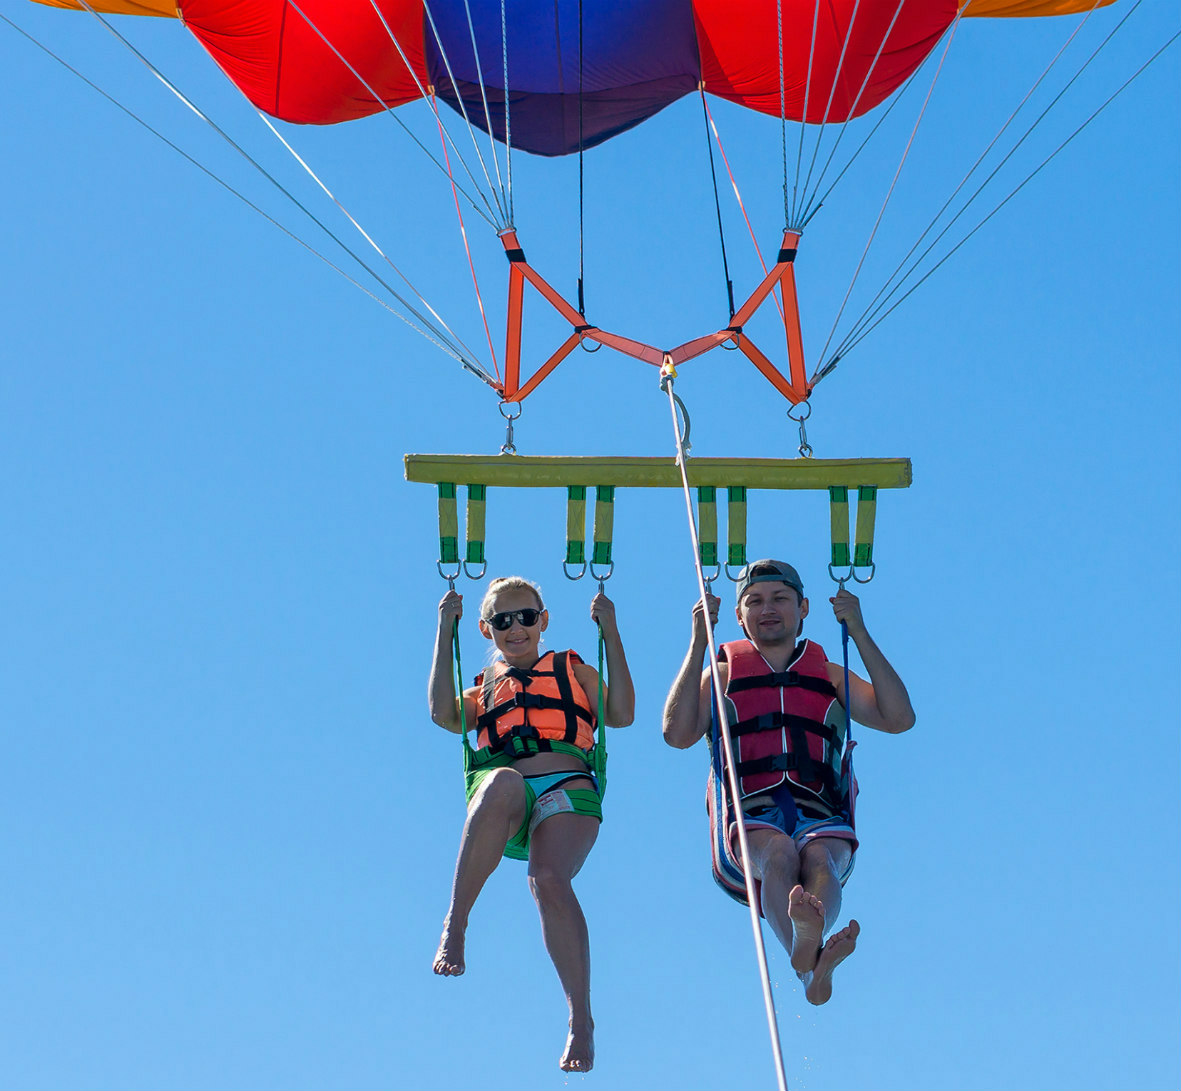 Young couple parasailing together